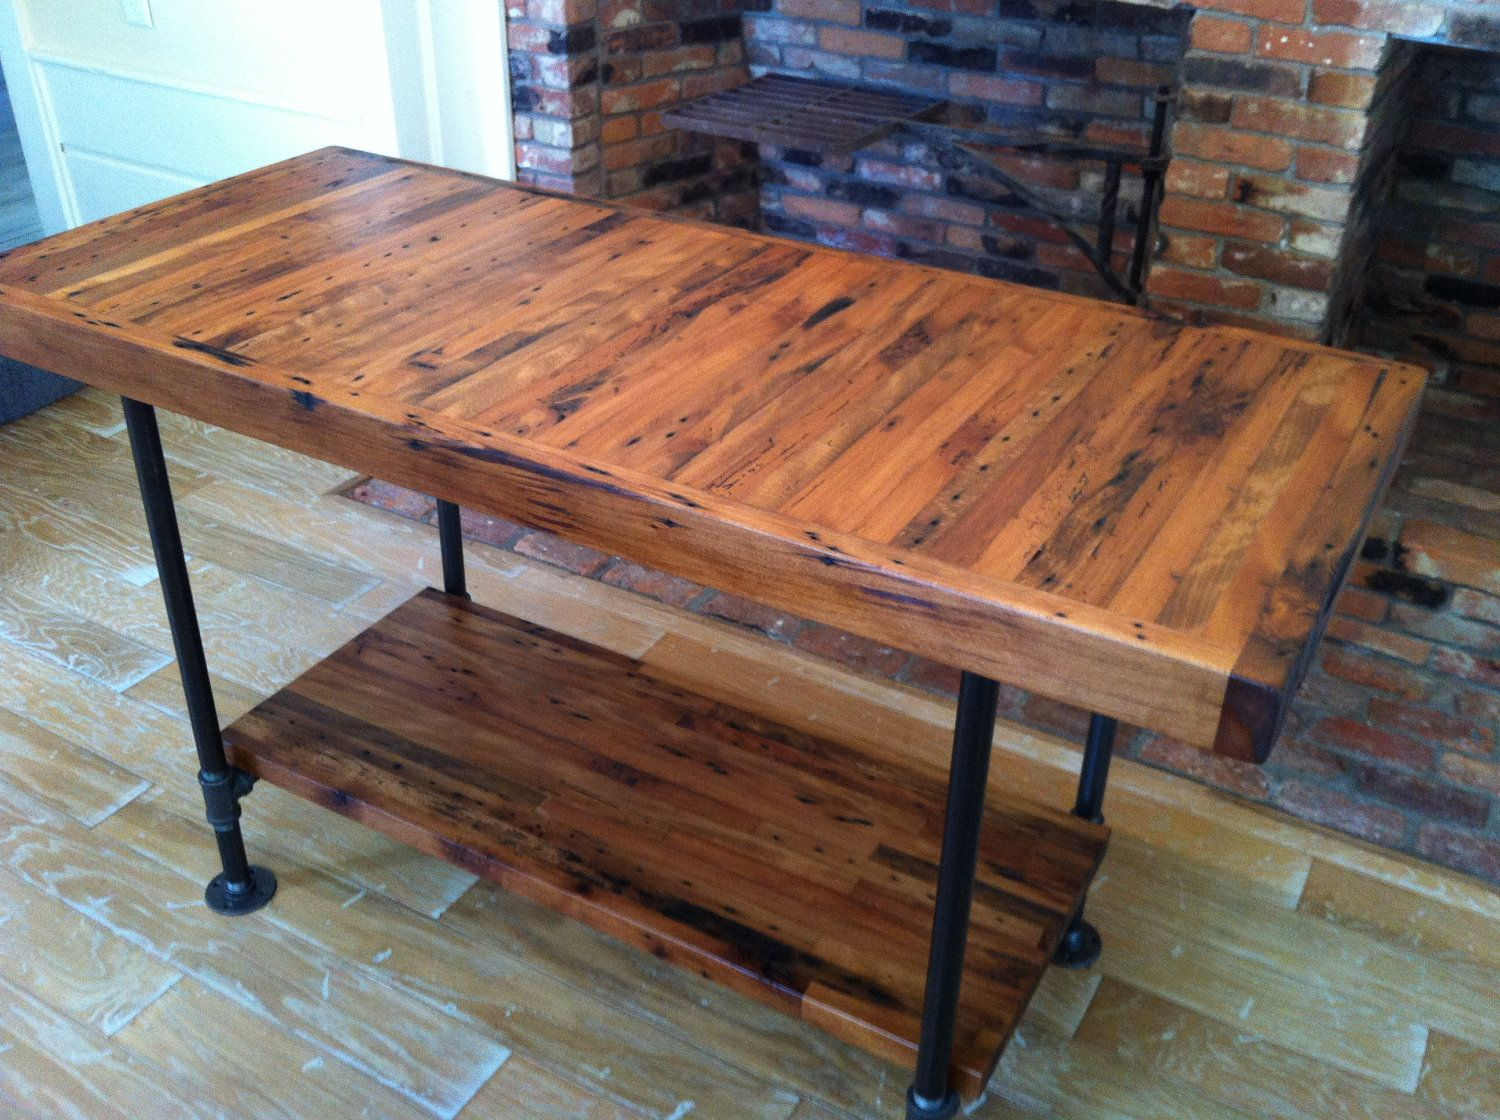 Kitchen island industrial butcher block style reclaimed wood and